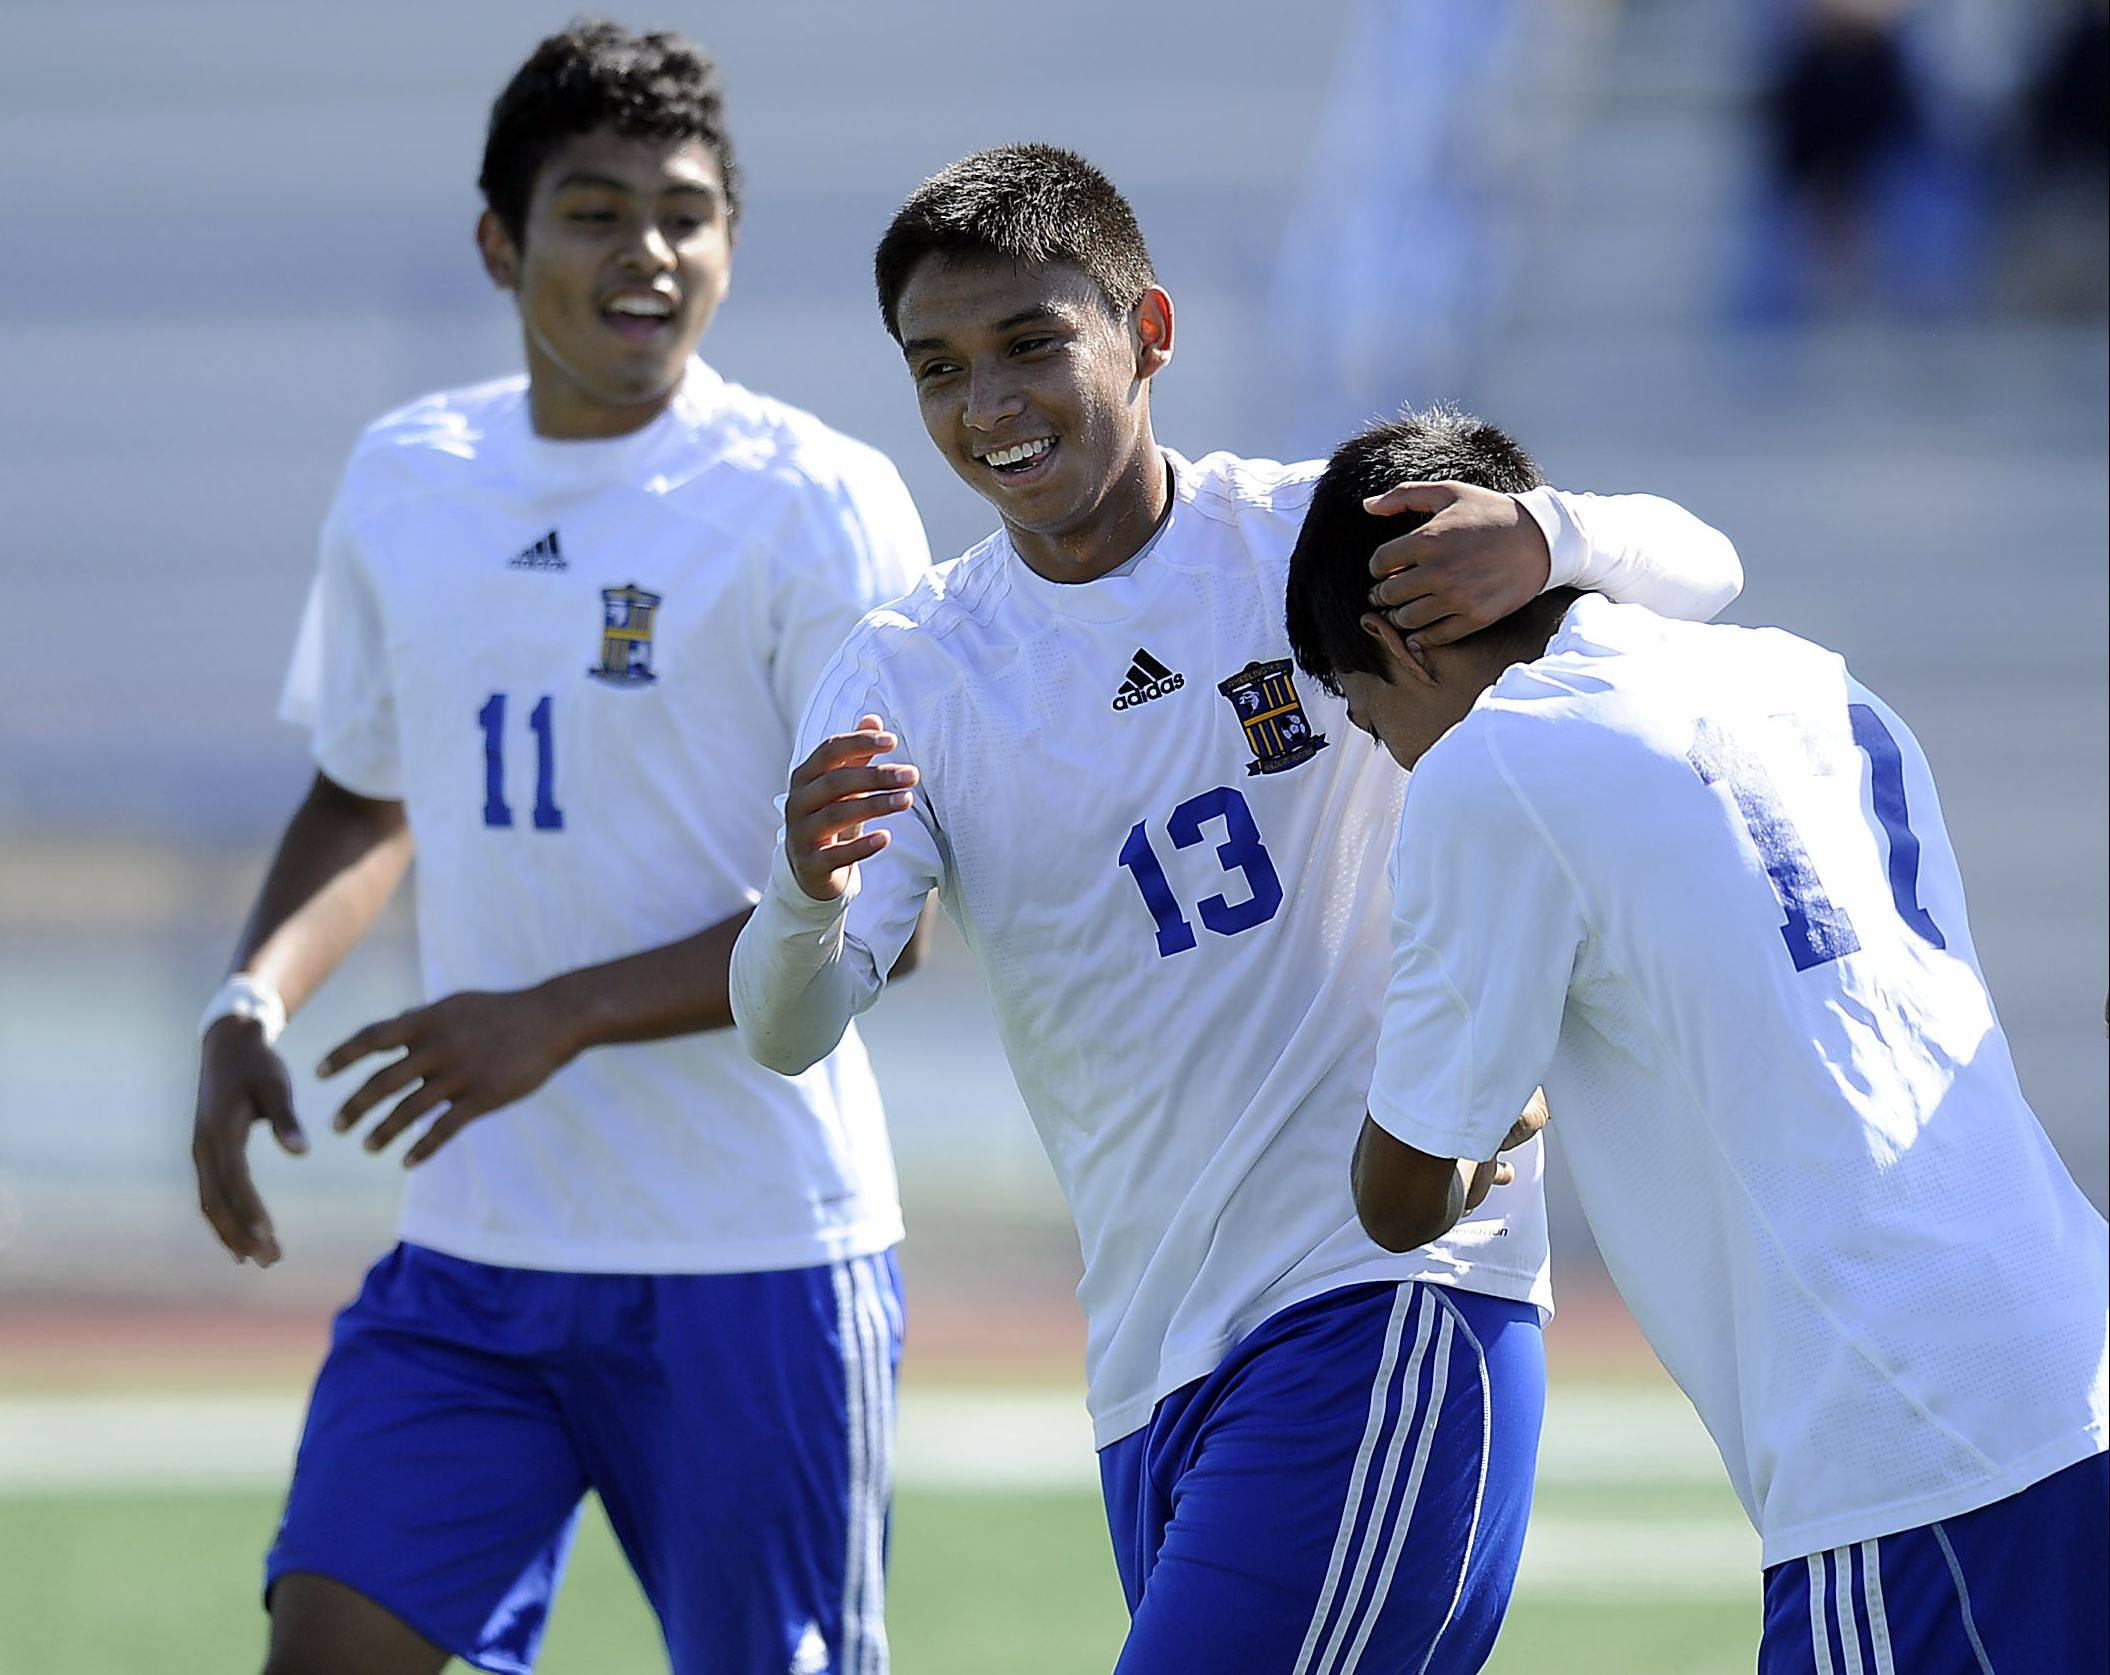 From left, Wheeling's Luis Herrera, Jose Garcia and Fabian Acosta celebrate a goal early this season. Garcia's knack for generating goals has the Wildcats in Saturday's Evanston sectional final.